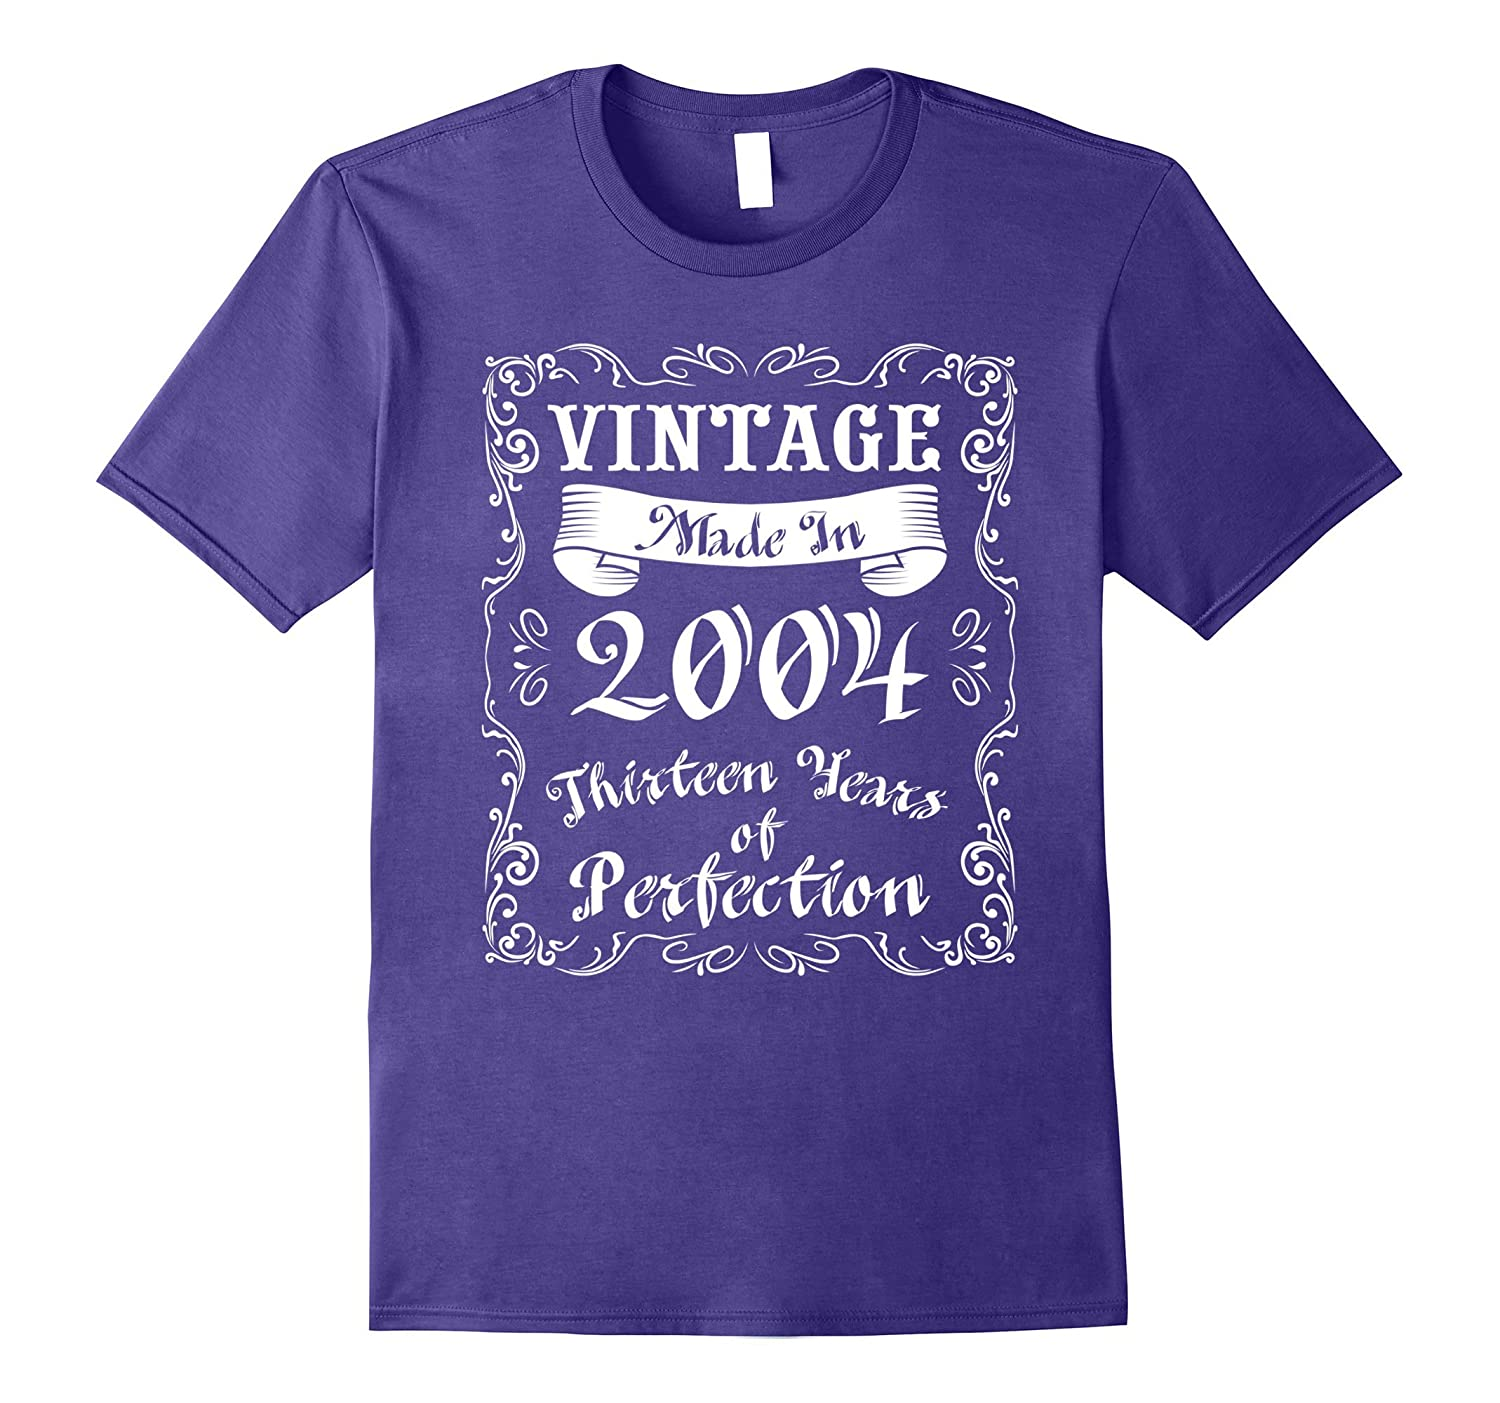 13th Birthday Gift T-Shirt 13 Years of Perfection 2004 Birth-PL